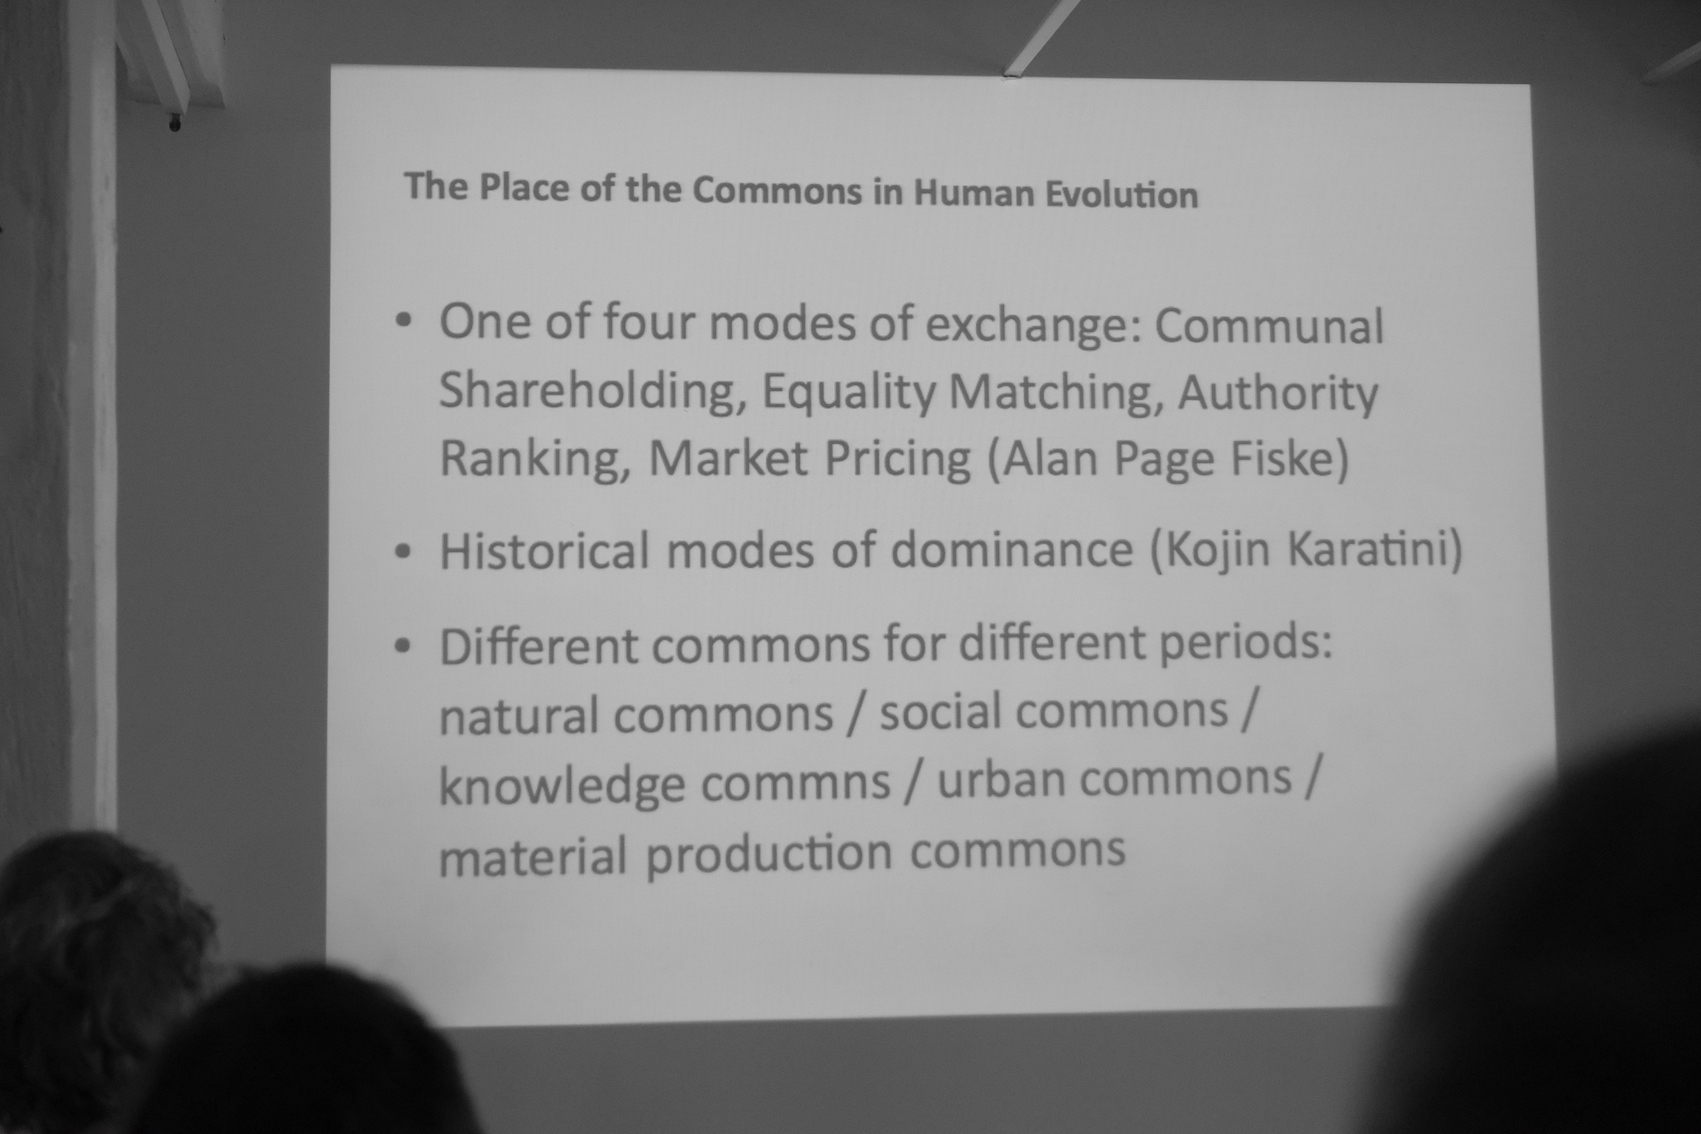 slide: The Place of the Commons in Human Evolution